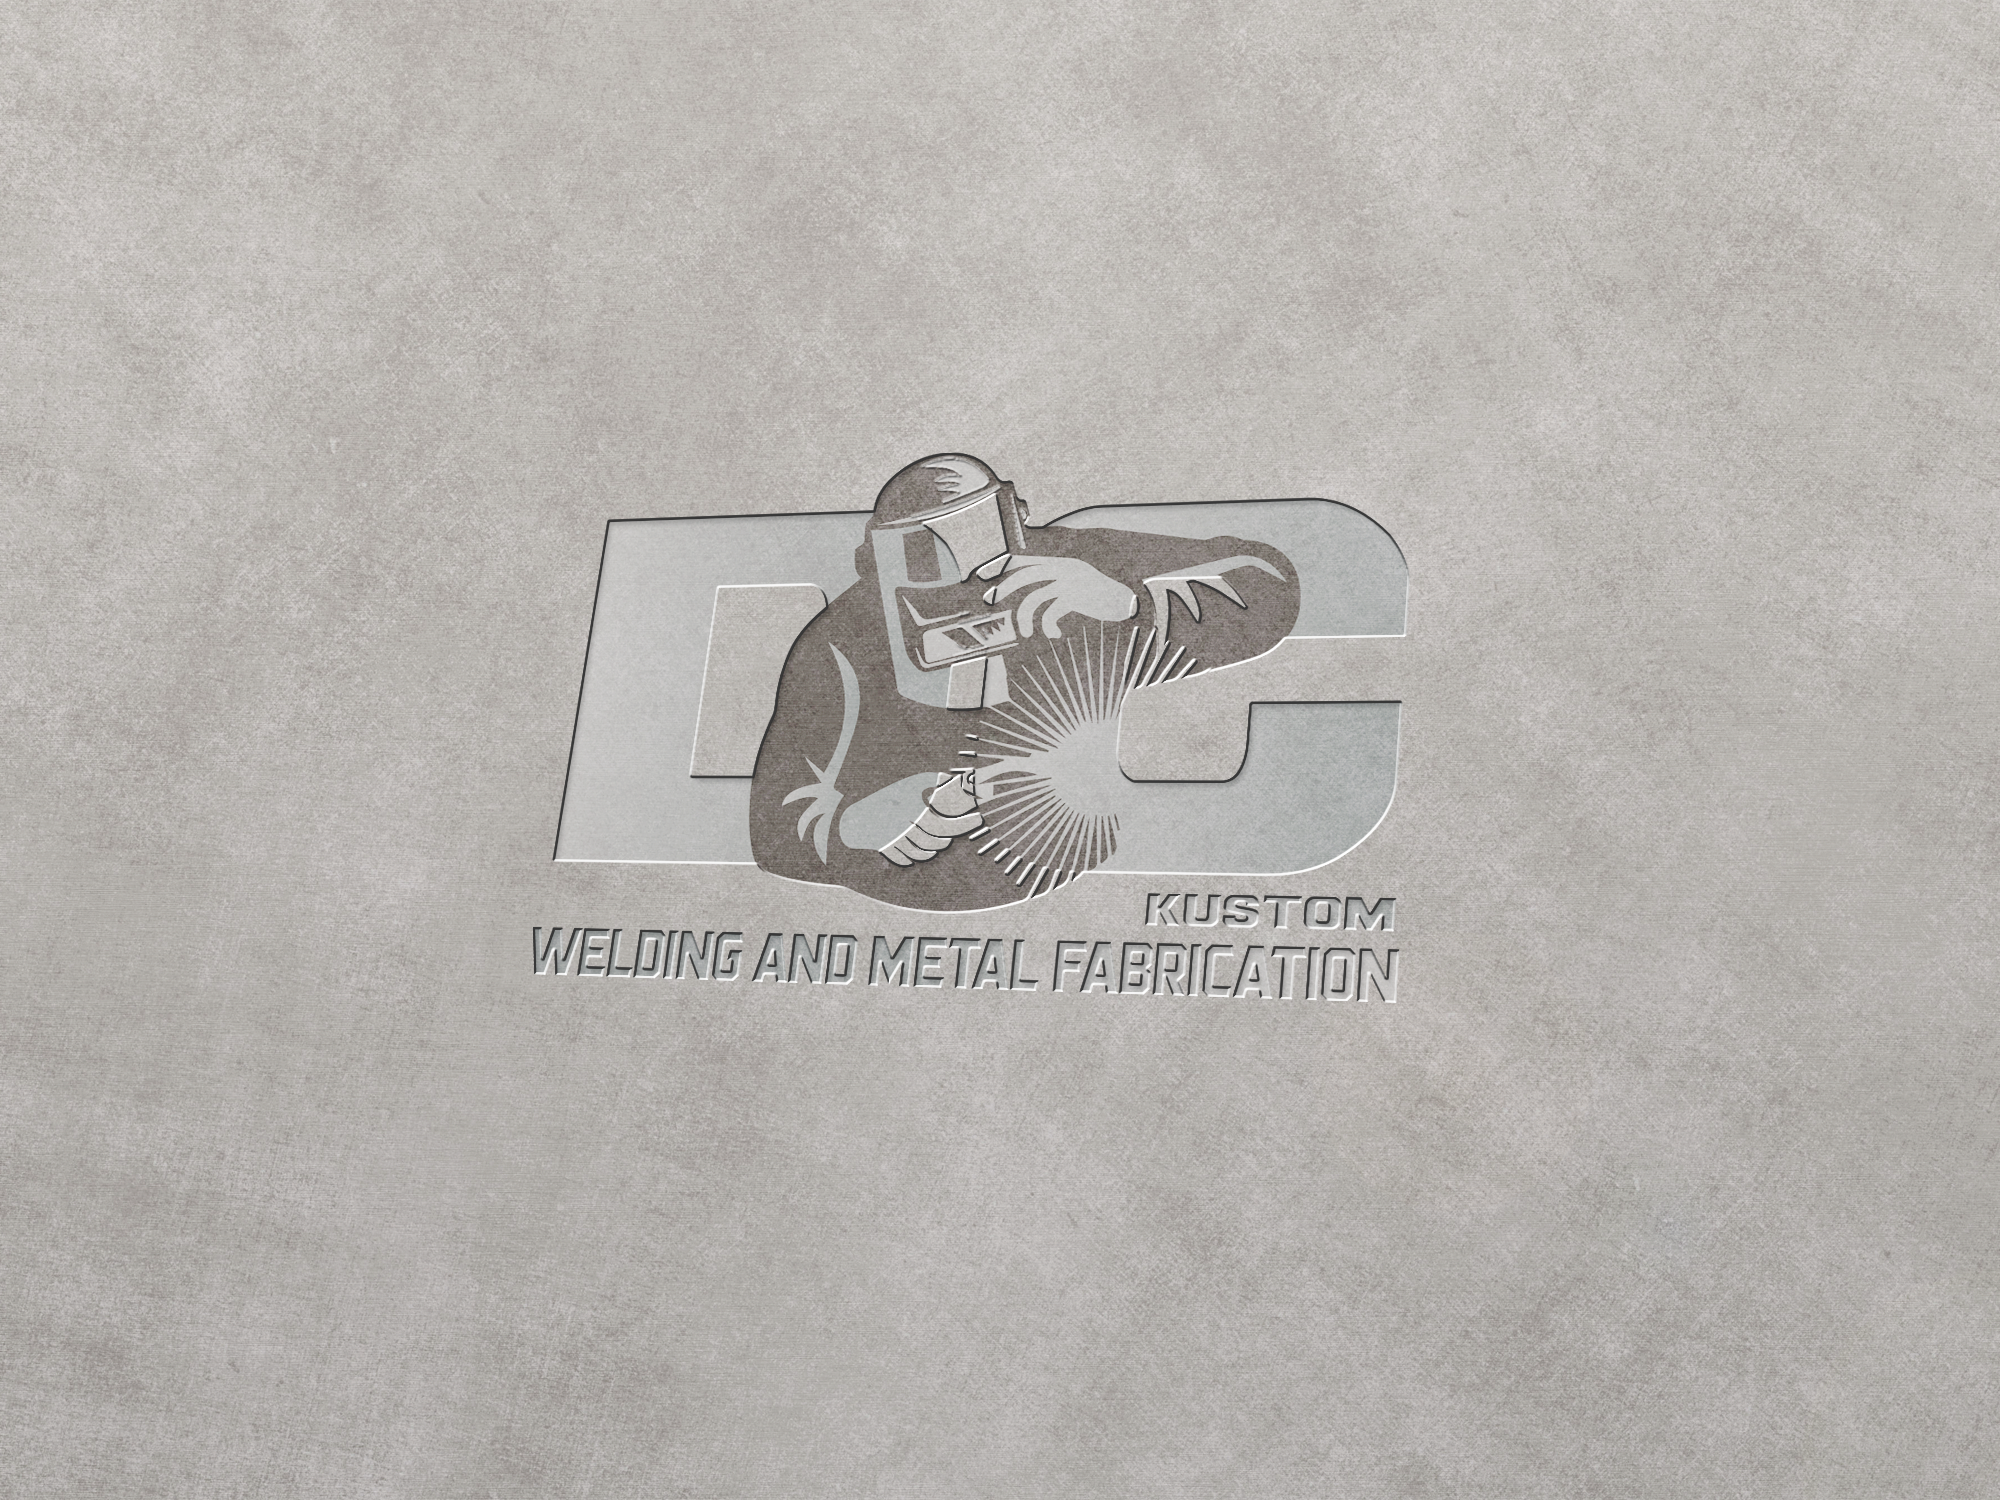 Logo Design by pojas12 - Entry No. 187 in the Logo Design Contest Imaginative Logo Design for DC KUSTOM WELDING & METAL FABRICATION.